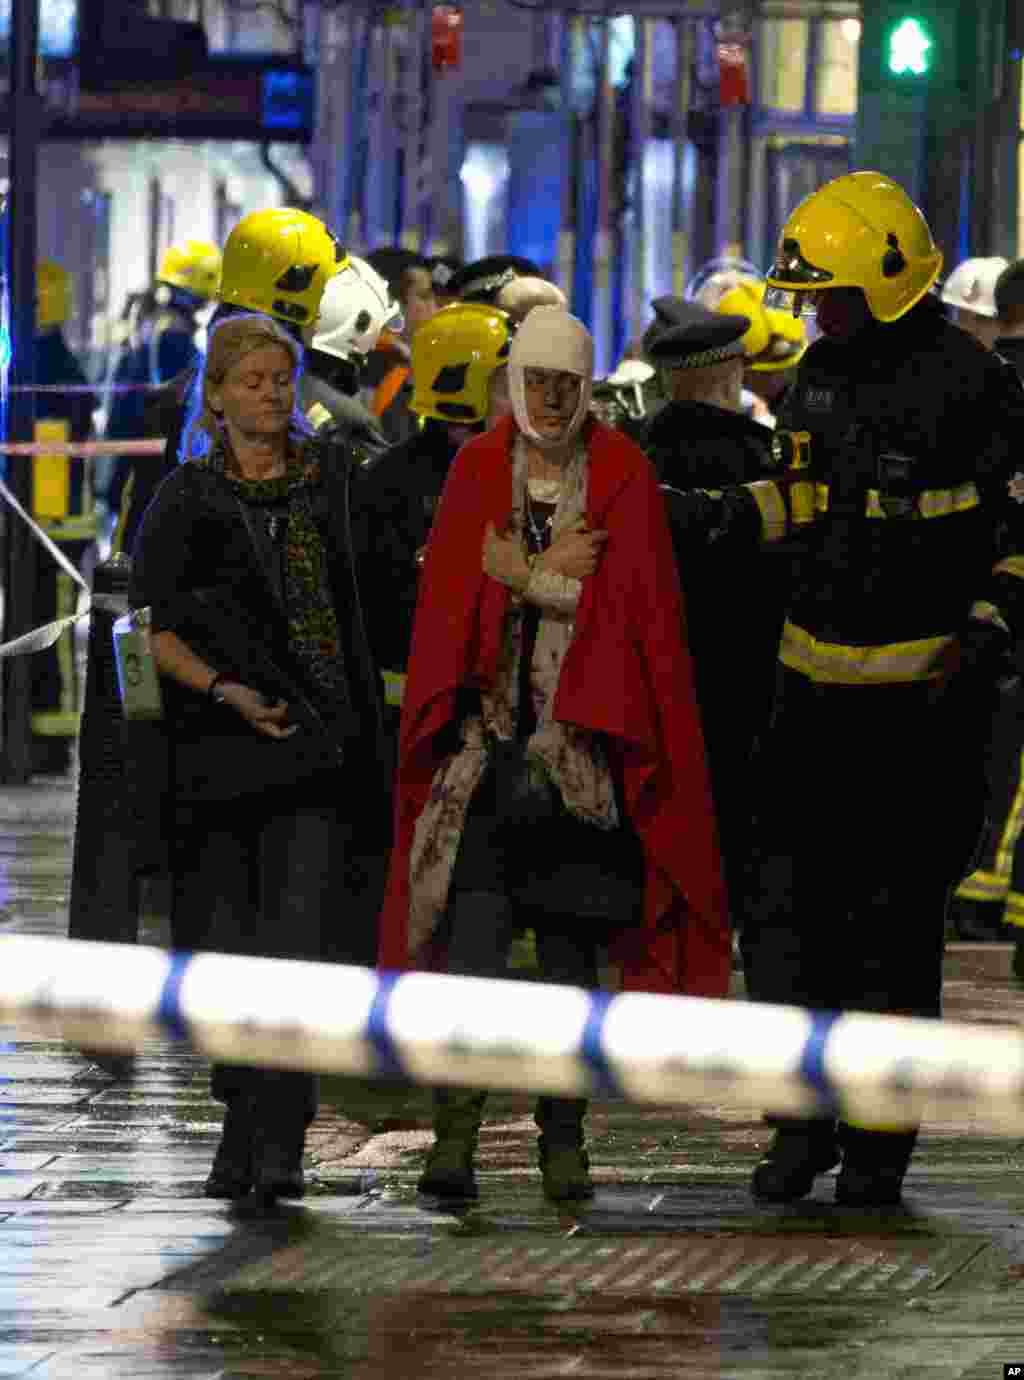 A woman walks, bandaged and wearing a blanket given by emergency services, following the partial collapse of the ceiling at the Apollo Theatre during a performance at the height of the Christmas season, Shaftesbury Avenue, central London, Dec. 19, 2013.